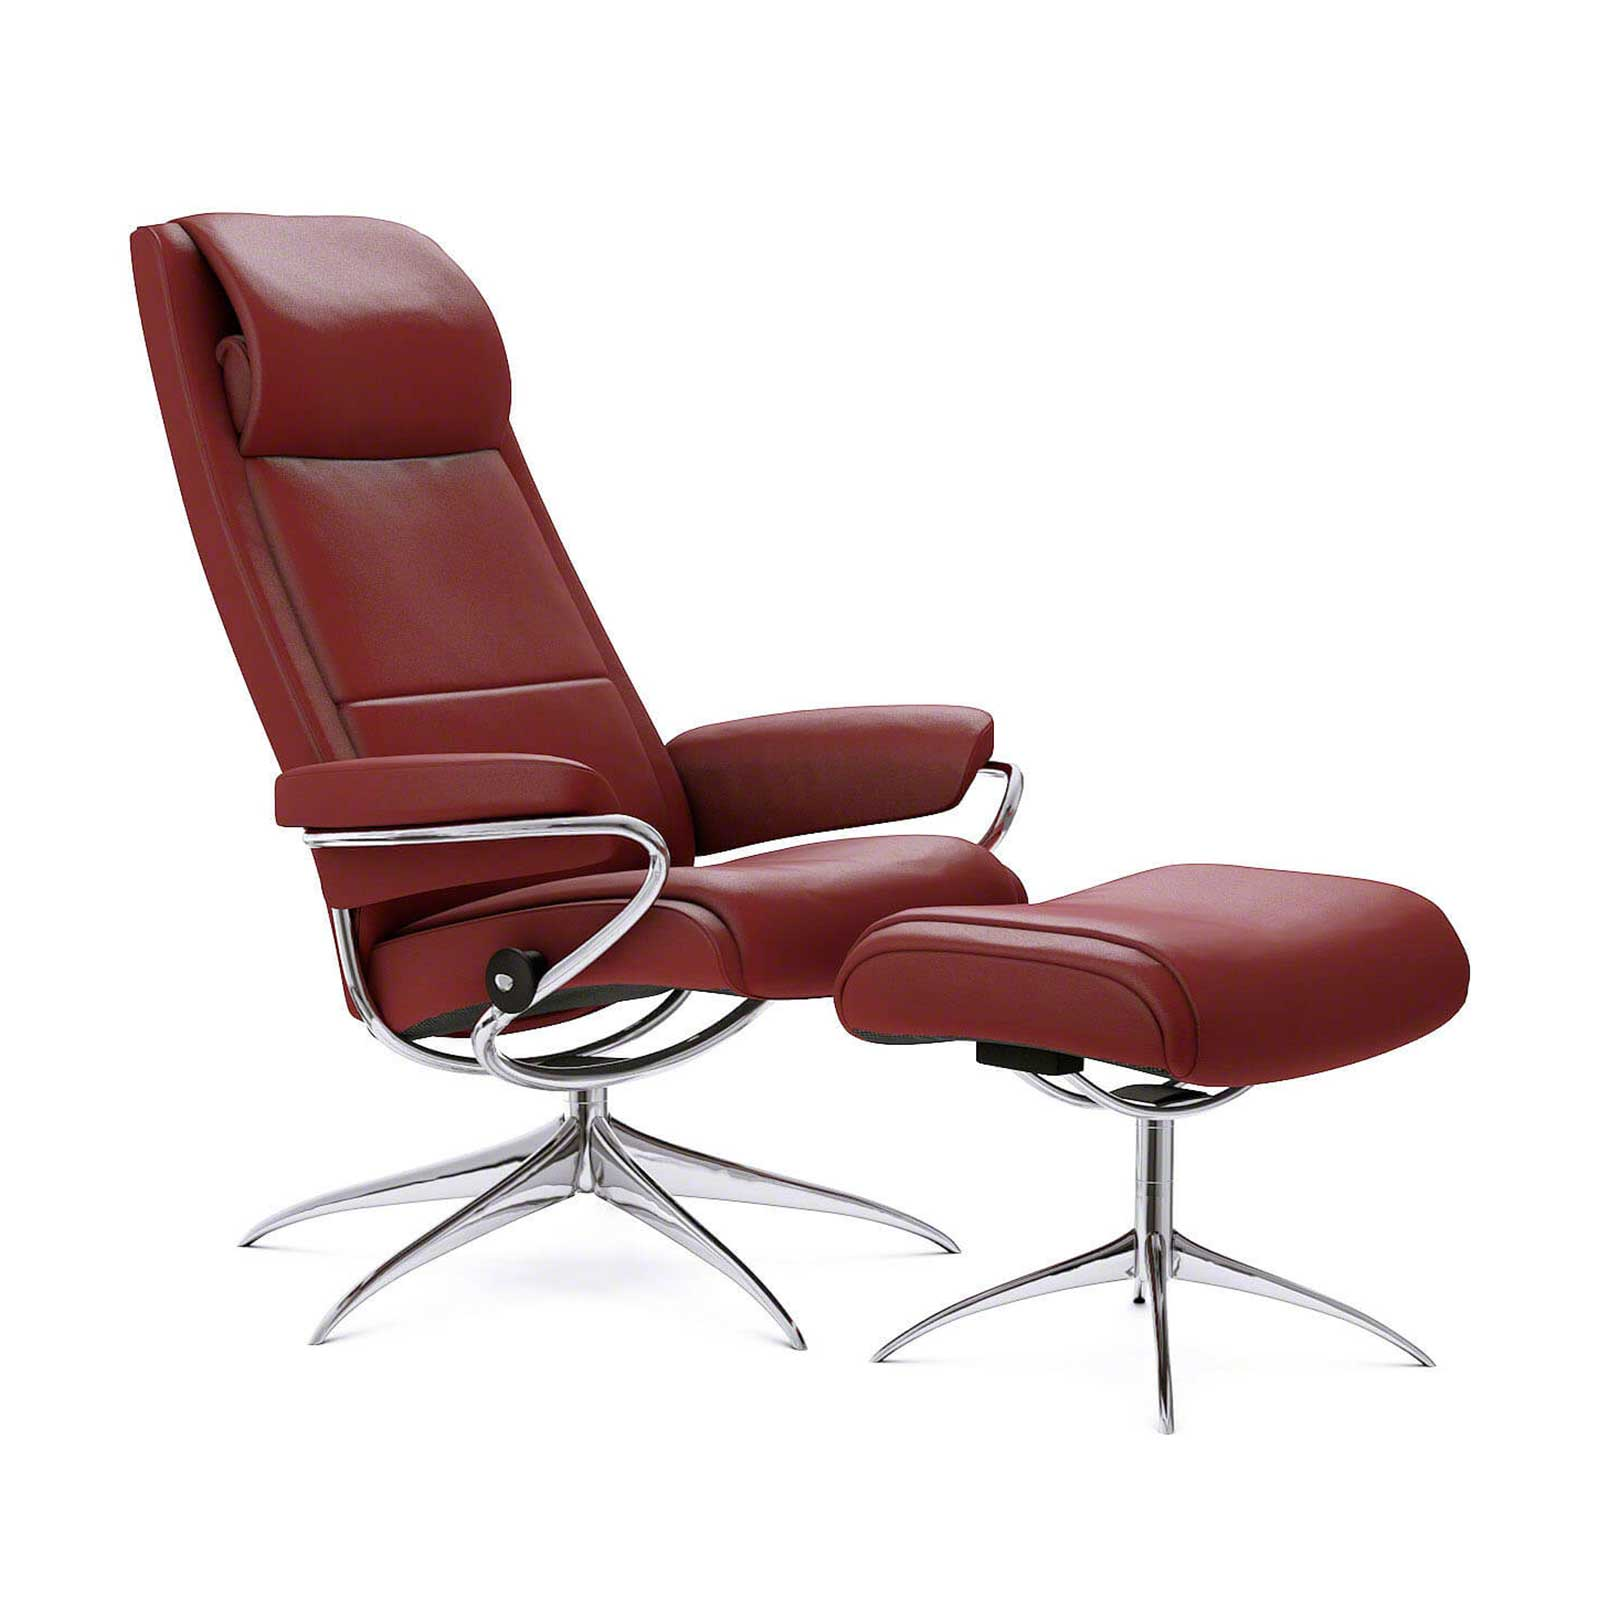 Test Stressless Sessel Stressless Angebote Relaxsessel Stressless Online Shop